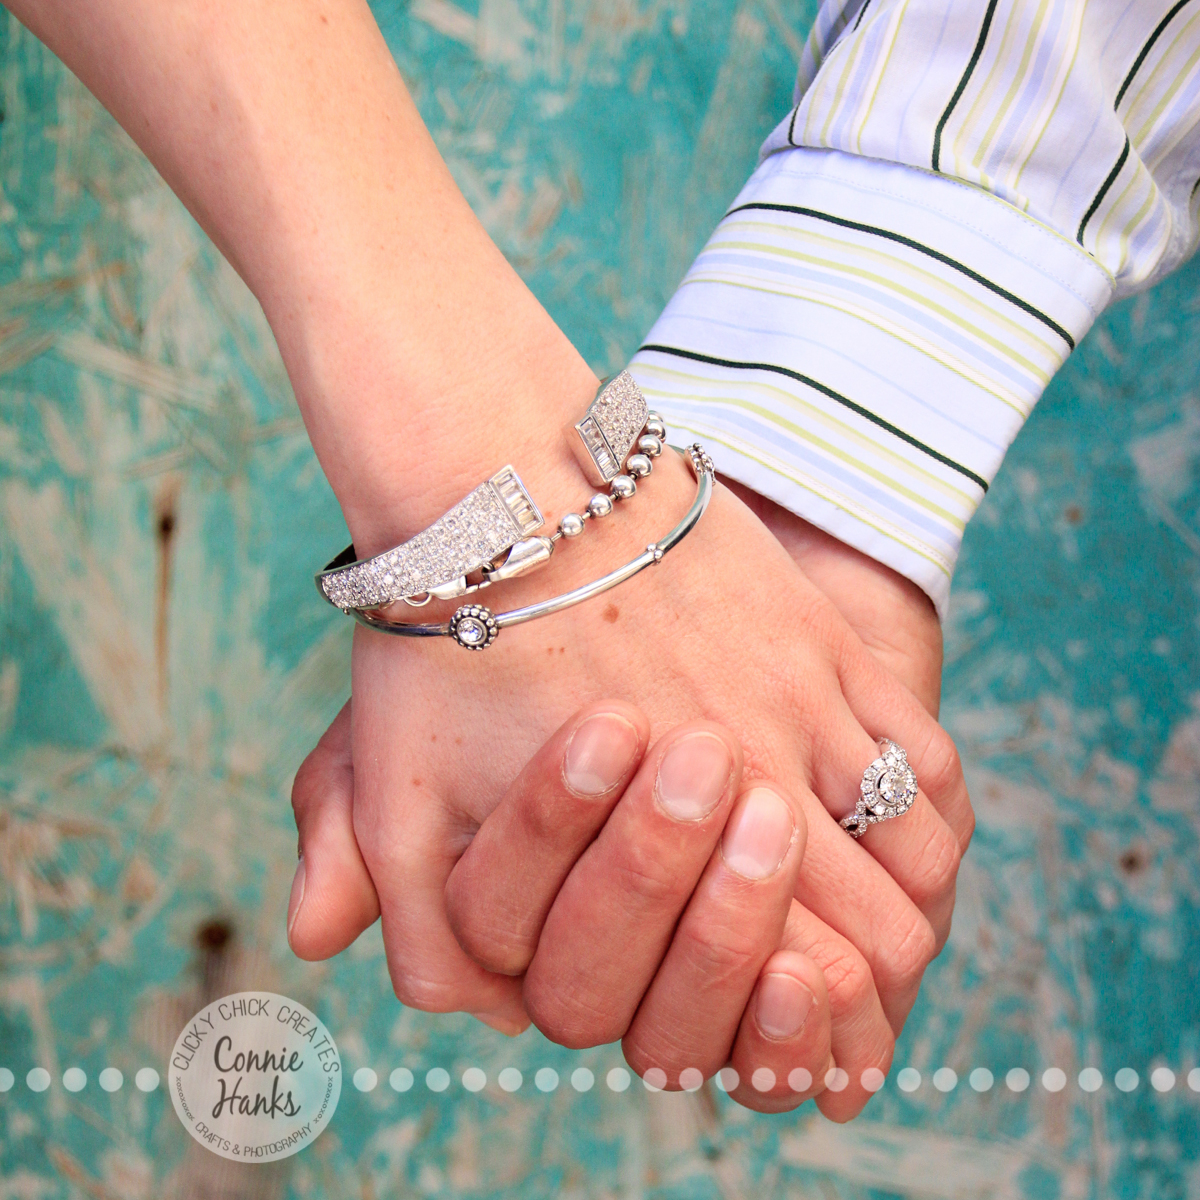 Connie Hanks Photography // ClickyChickCreates.com // engagement couple session, Rosarito, Mexico, mercado, market, colorful, turquoise, blue, gray, wood, wheel, rustic, arches, archways, kiss